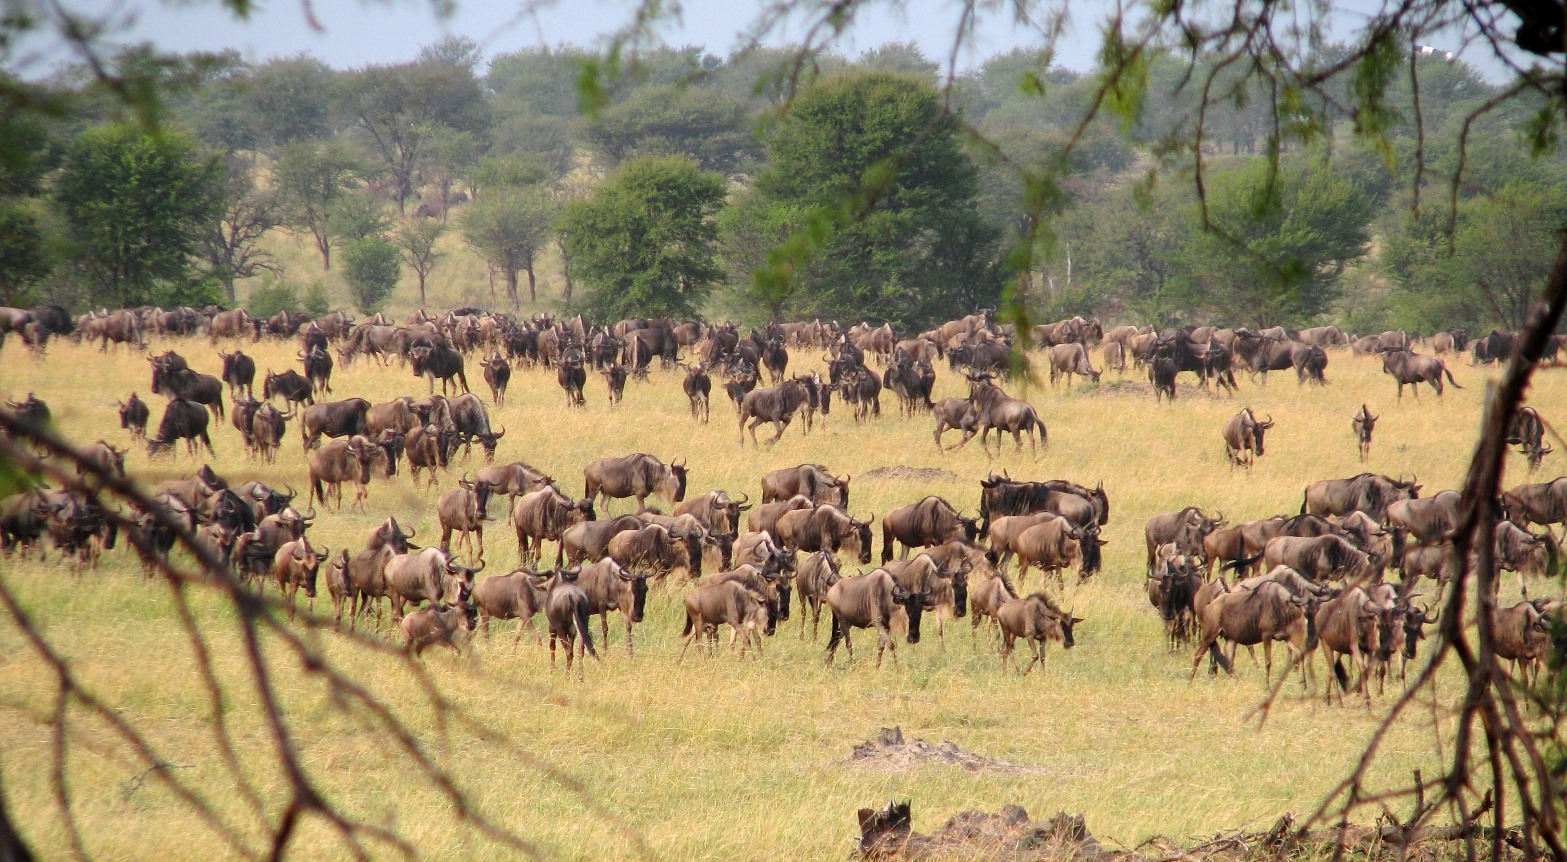 Snapshot of the massive migration of over one million wildebeest, as well as tens of thousands of gazelles, zebra, and eland, from Serengeti National Park in Tanzania to Maasai Mara in Kenya is an ecological phenomenon that draws over 140,000 visitors per year.